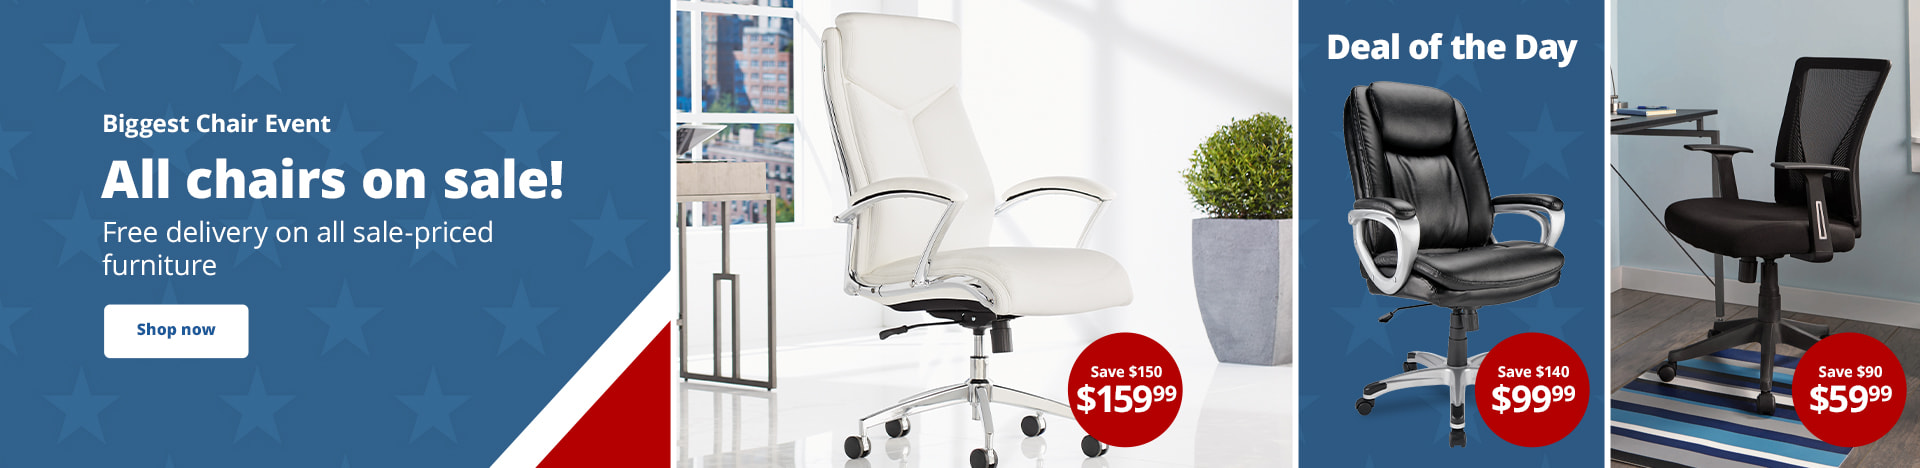 Biggest Chair Event | All chairs on sale! Free delivery on all sale-priced furniture